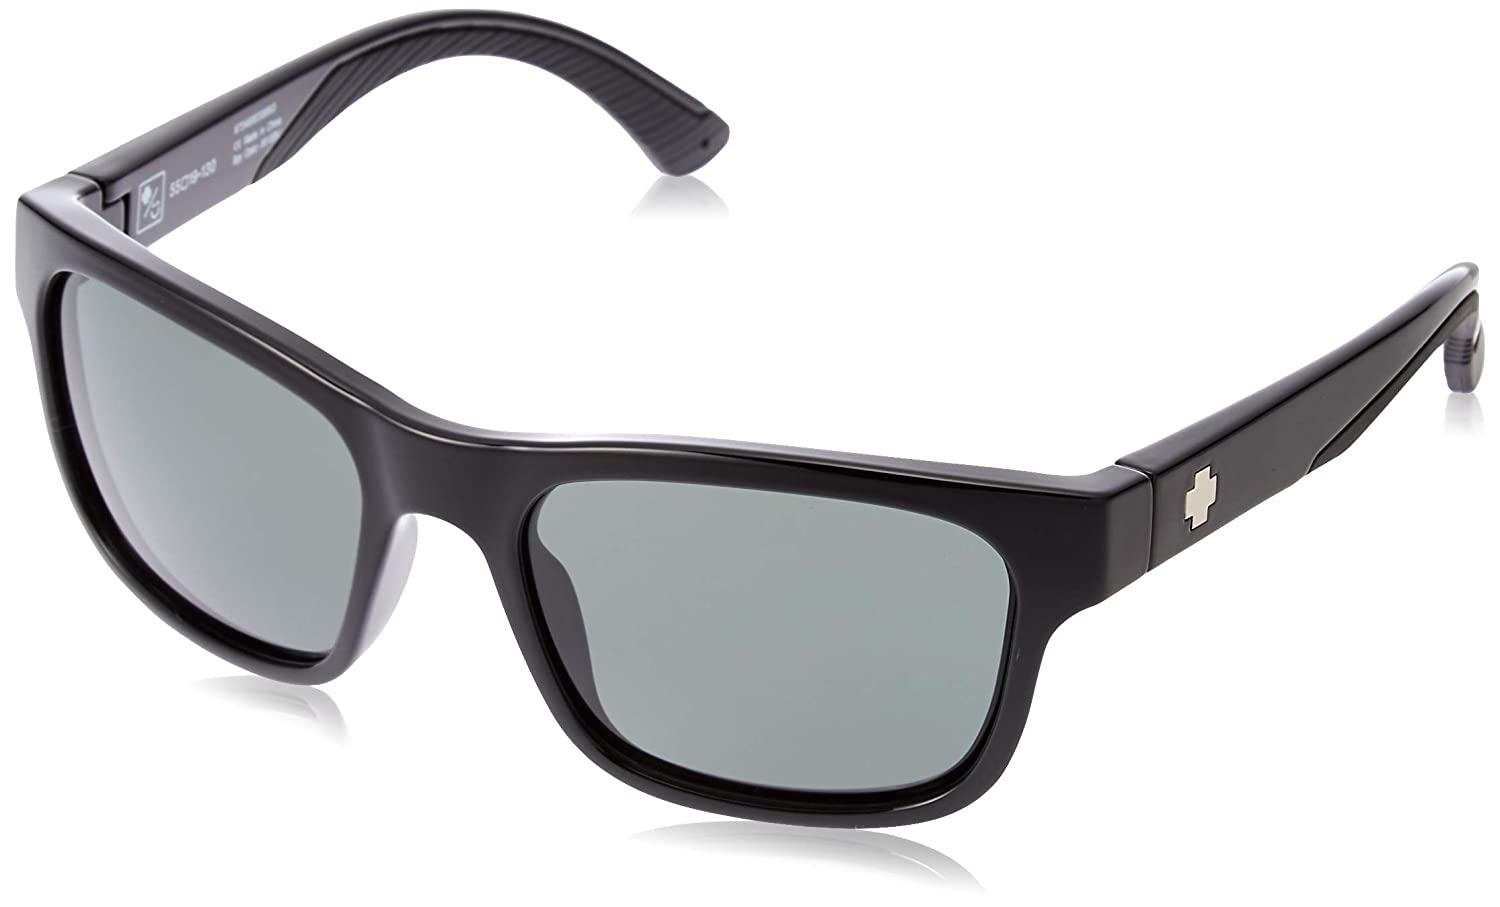 310bf76f33f Amazon.com  SPY Optic Hunt Square Sunglasses  Clothing